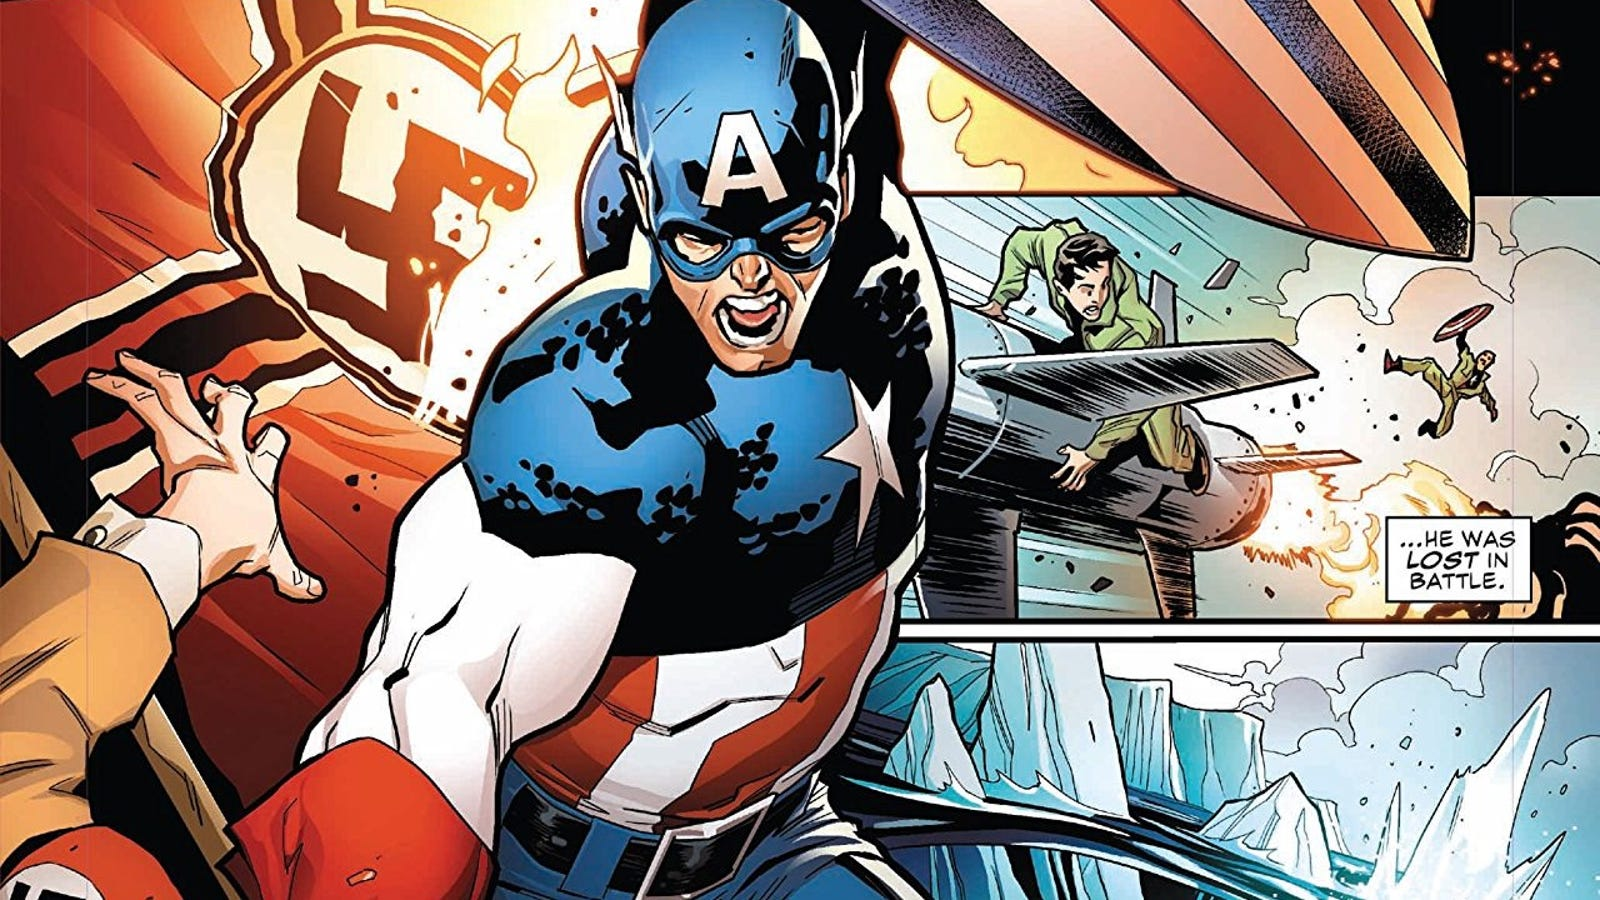 Marvel Comics Is Doubling Down on Its Misguided Crusade to Remain 'Apolitical', and It's Using Captain America to Do It